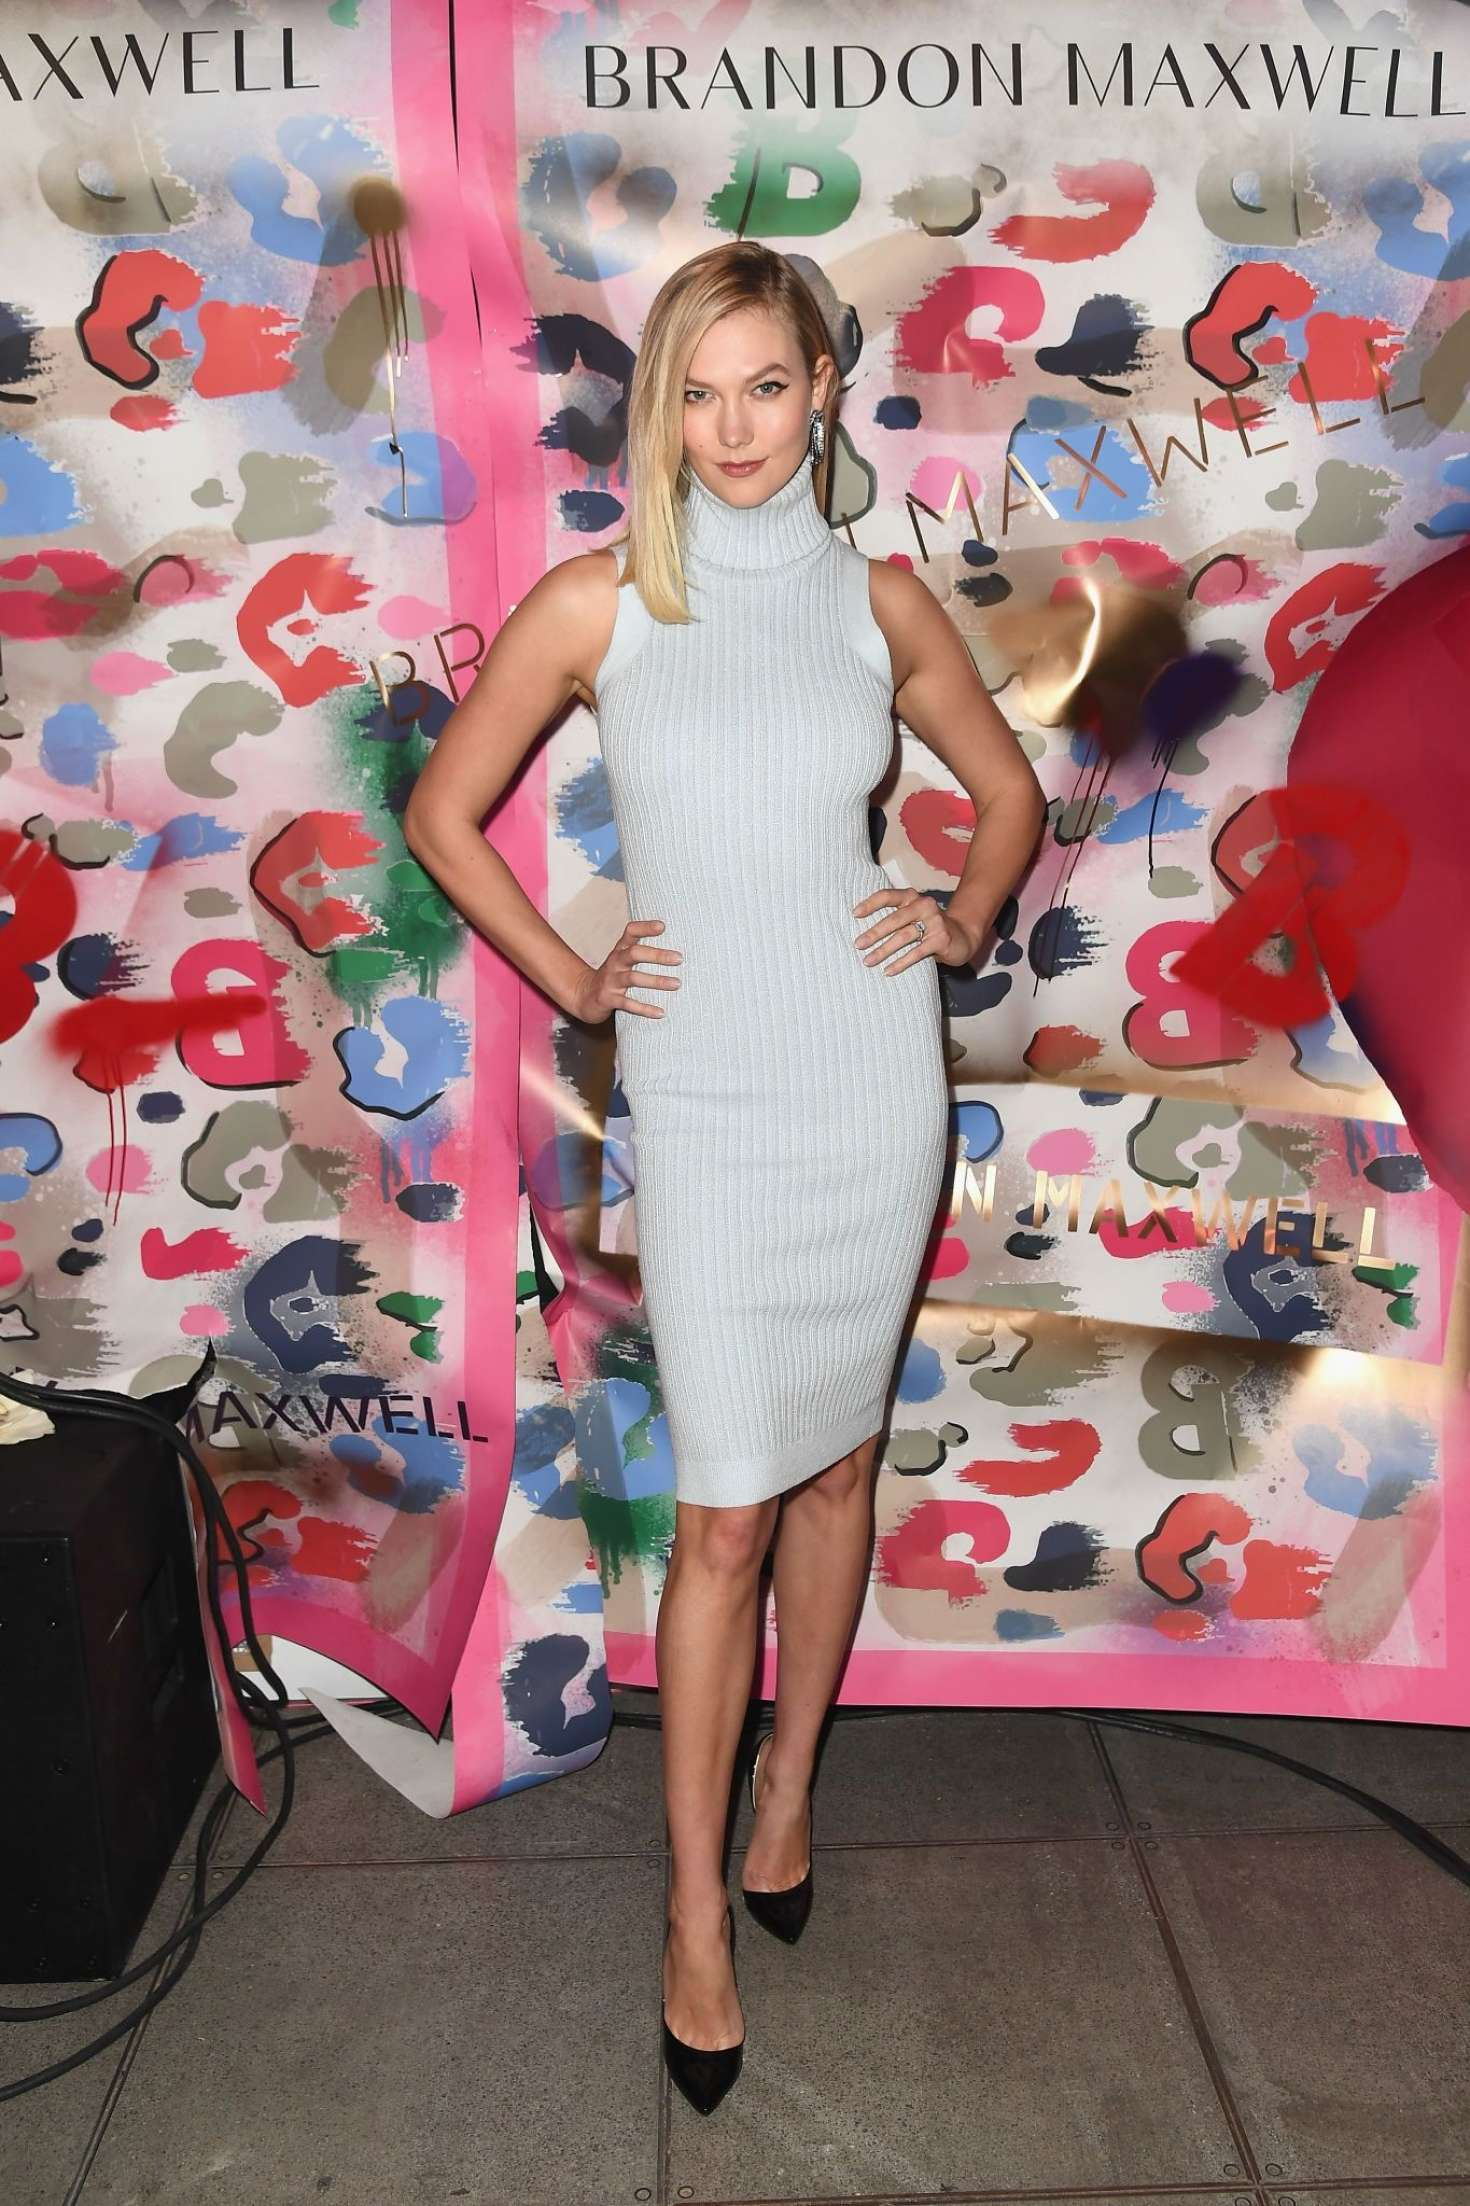 Karlie Kloss - Brandon Maxwell's Show in NYC